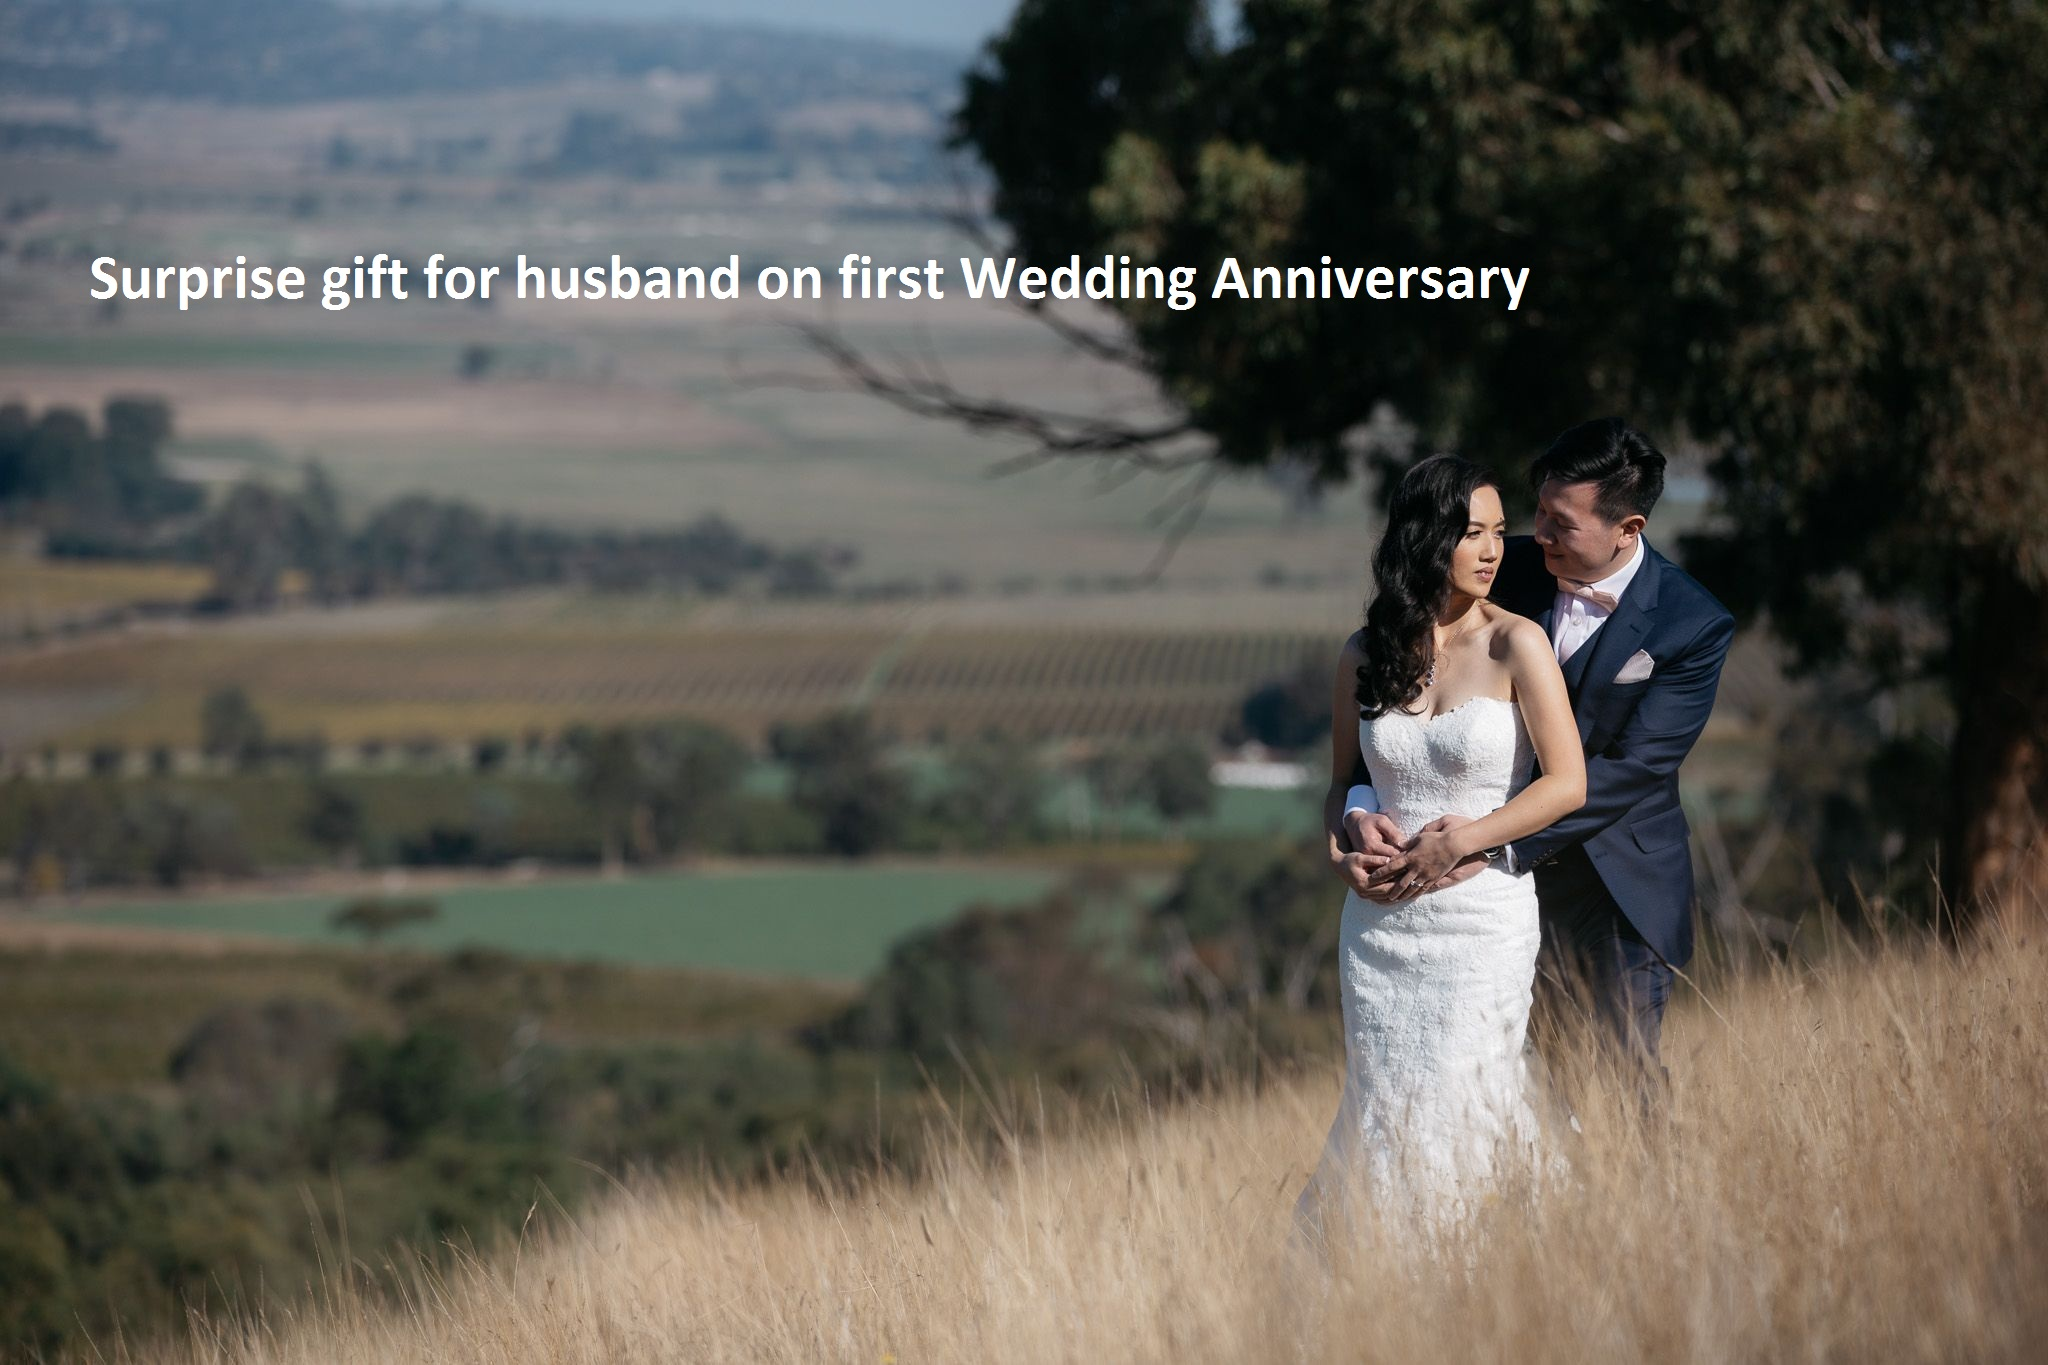 surprise gift for husband on first wedding anniversary